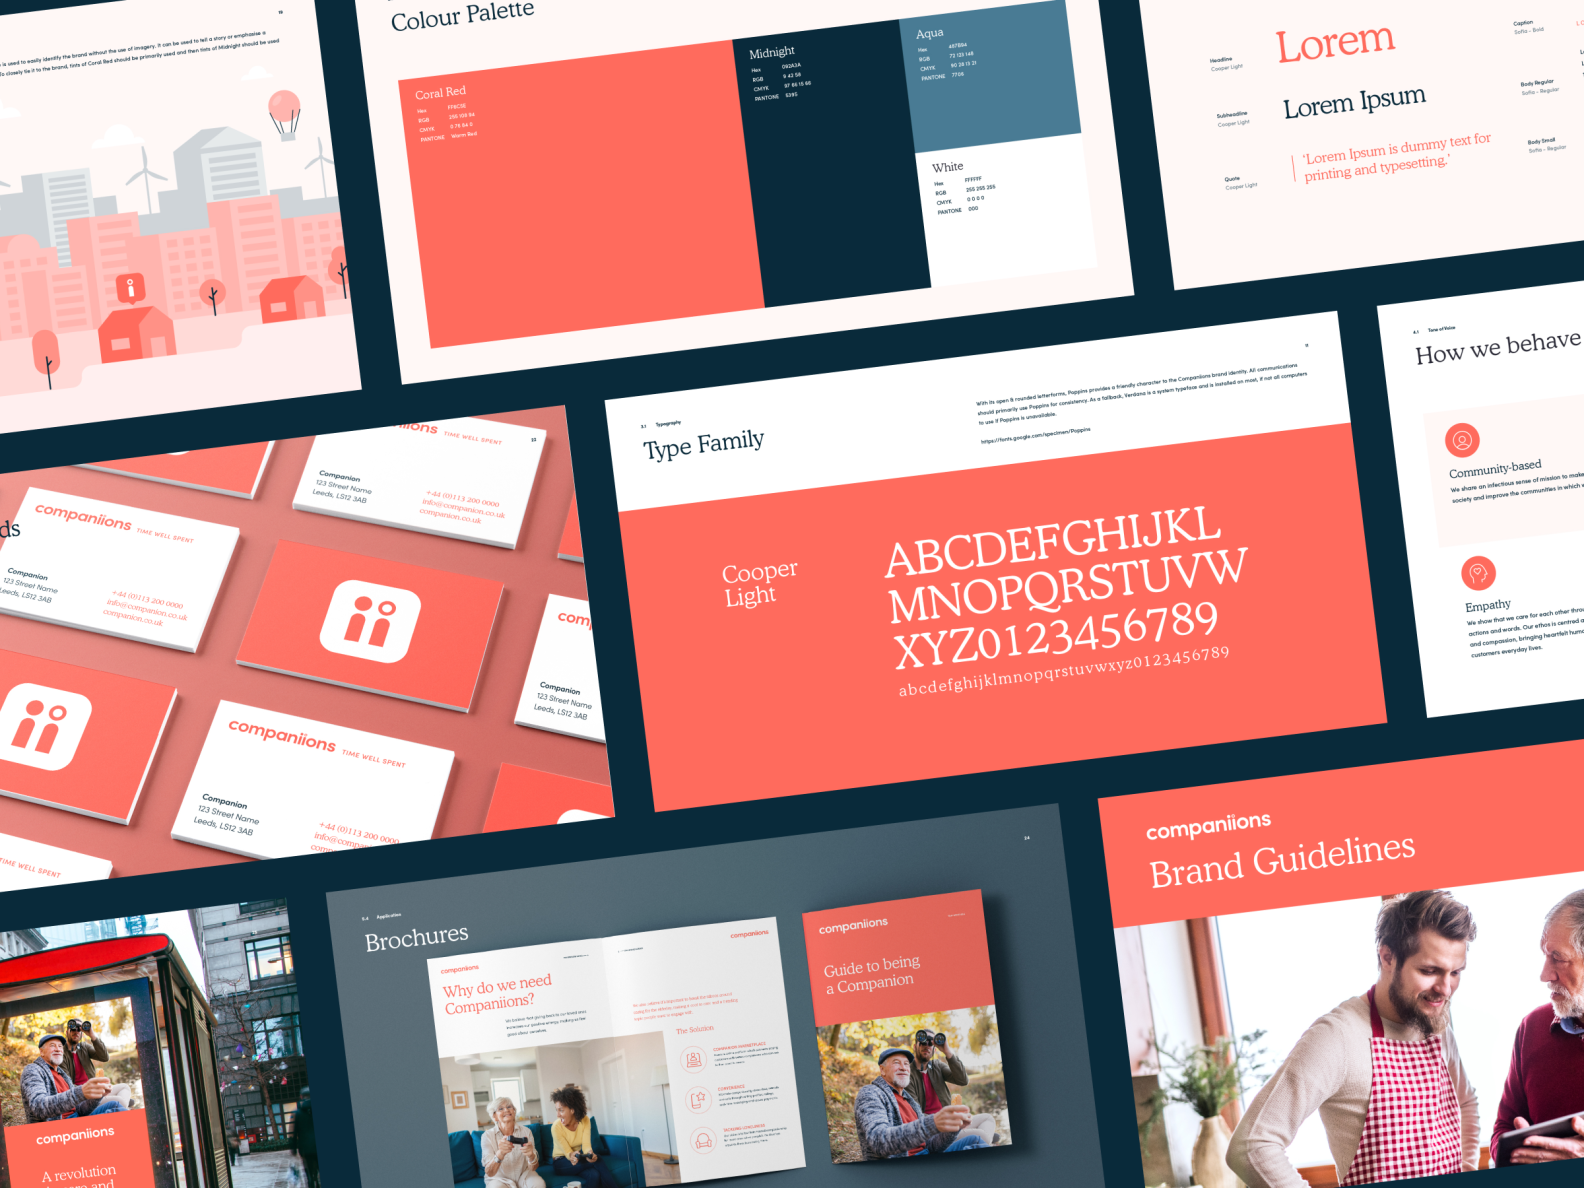 Companiions brand guidelines